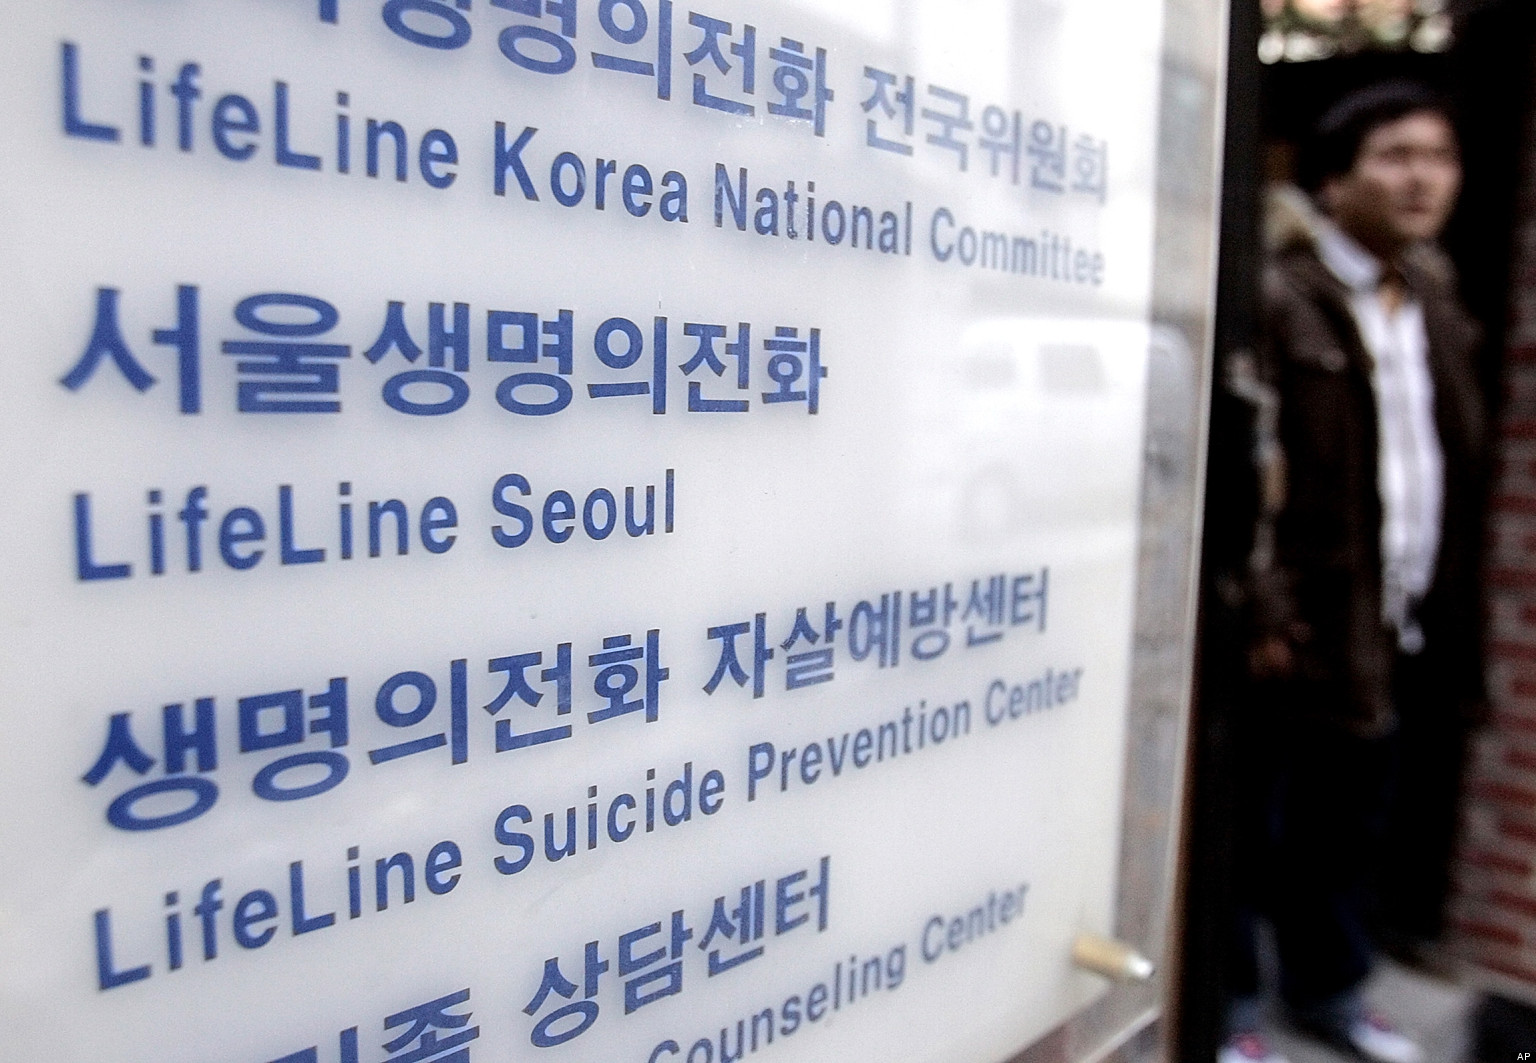 Suicide Prevention Quotes South Korea Suicides Mapo Bridge Gets Uplifting Signs To Prevent